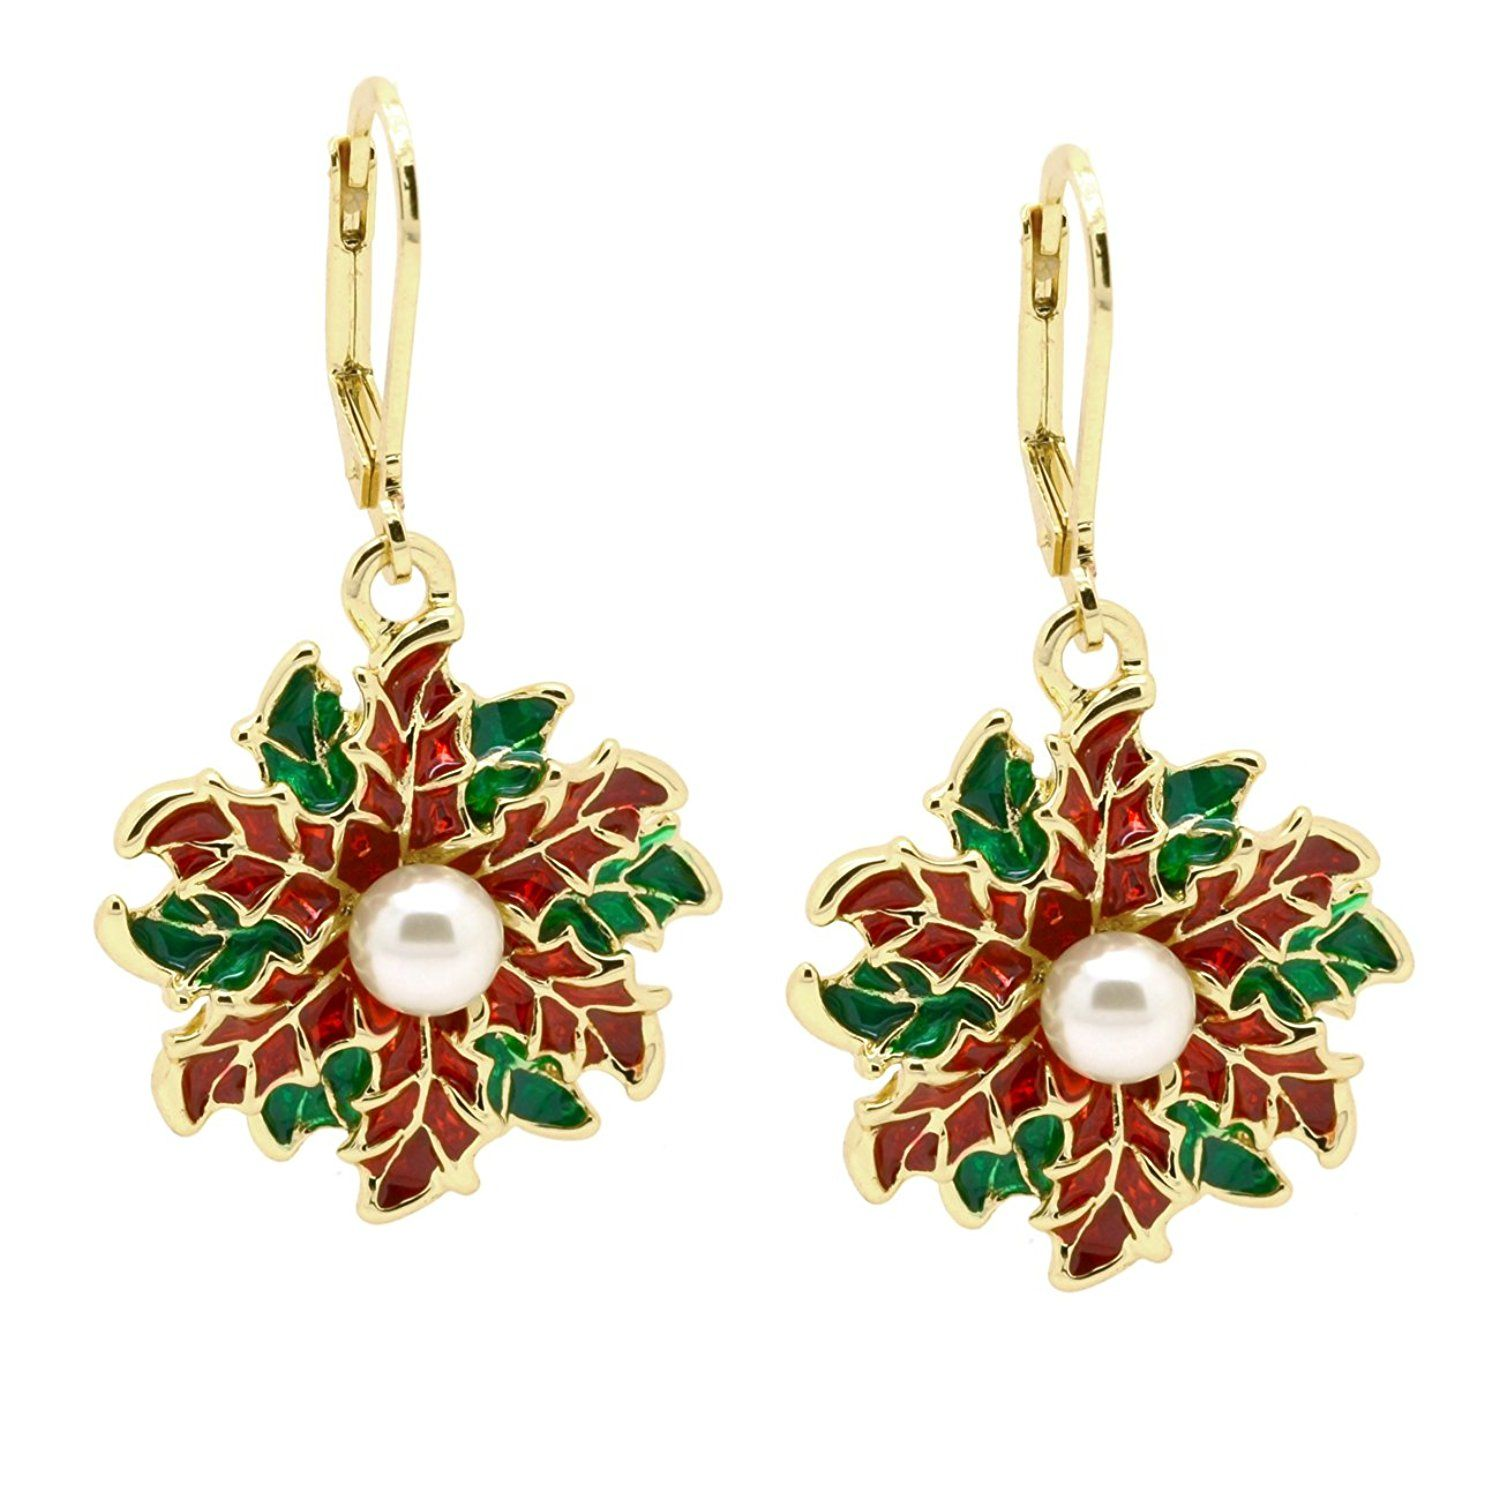 Poinsettia jewelry set christmas red green simulated pearl pendant